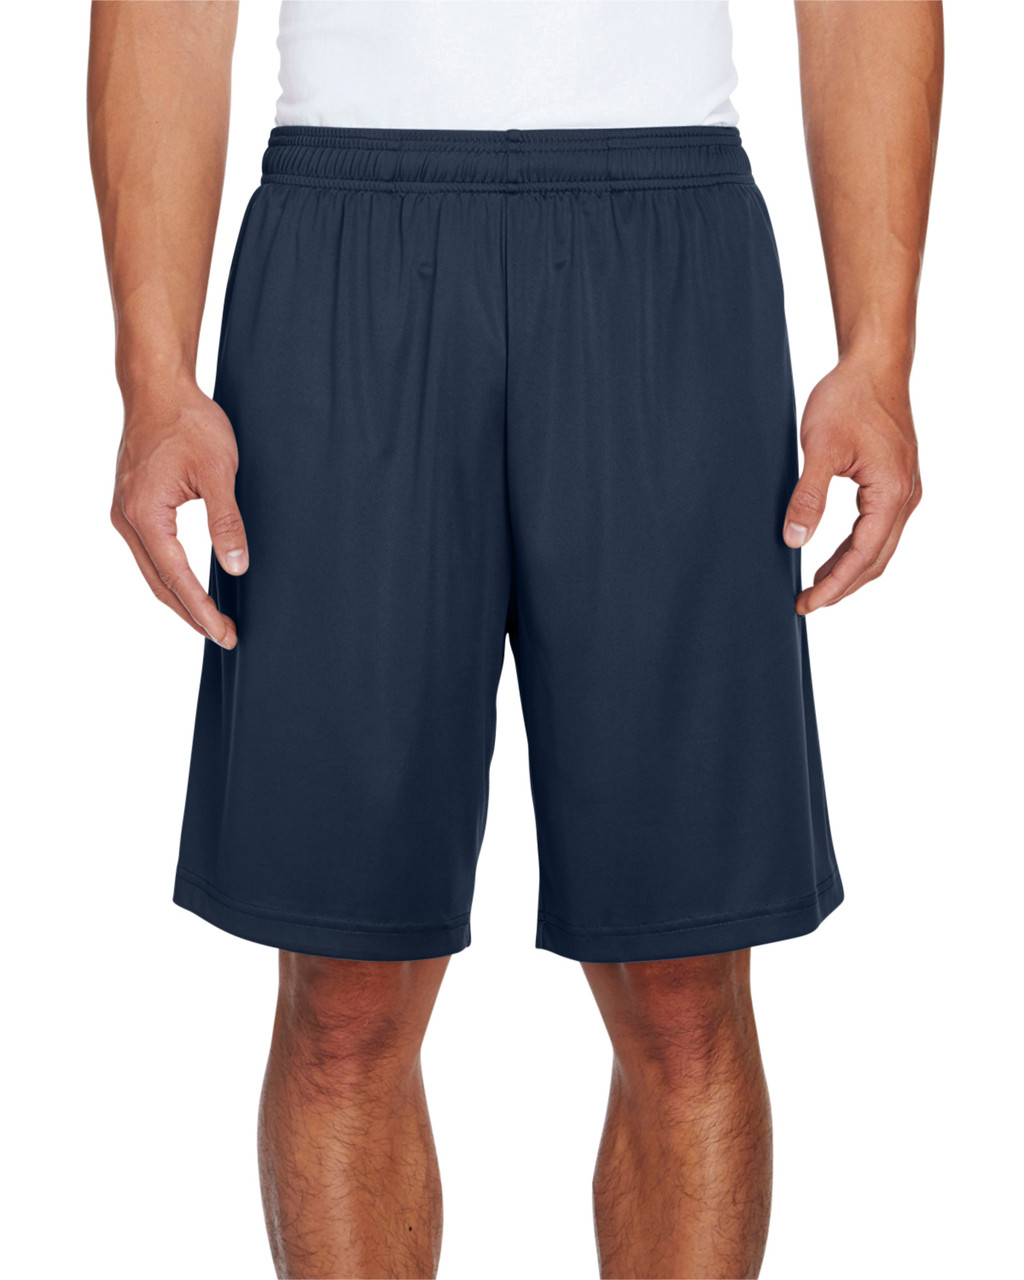 Sport Dark Navy - TT11SH Team 365 Men's Zone Performance Short | BlankClothing.ca